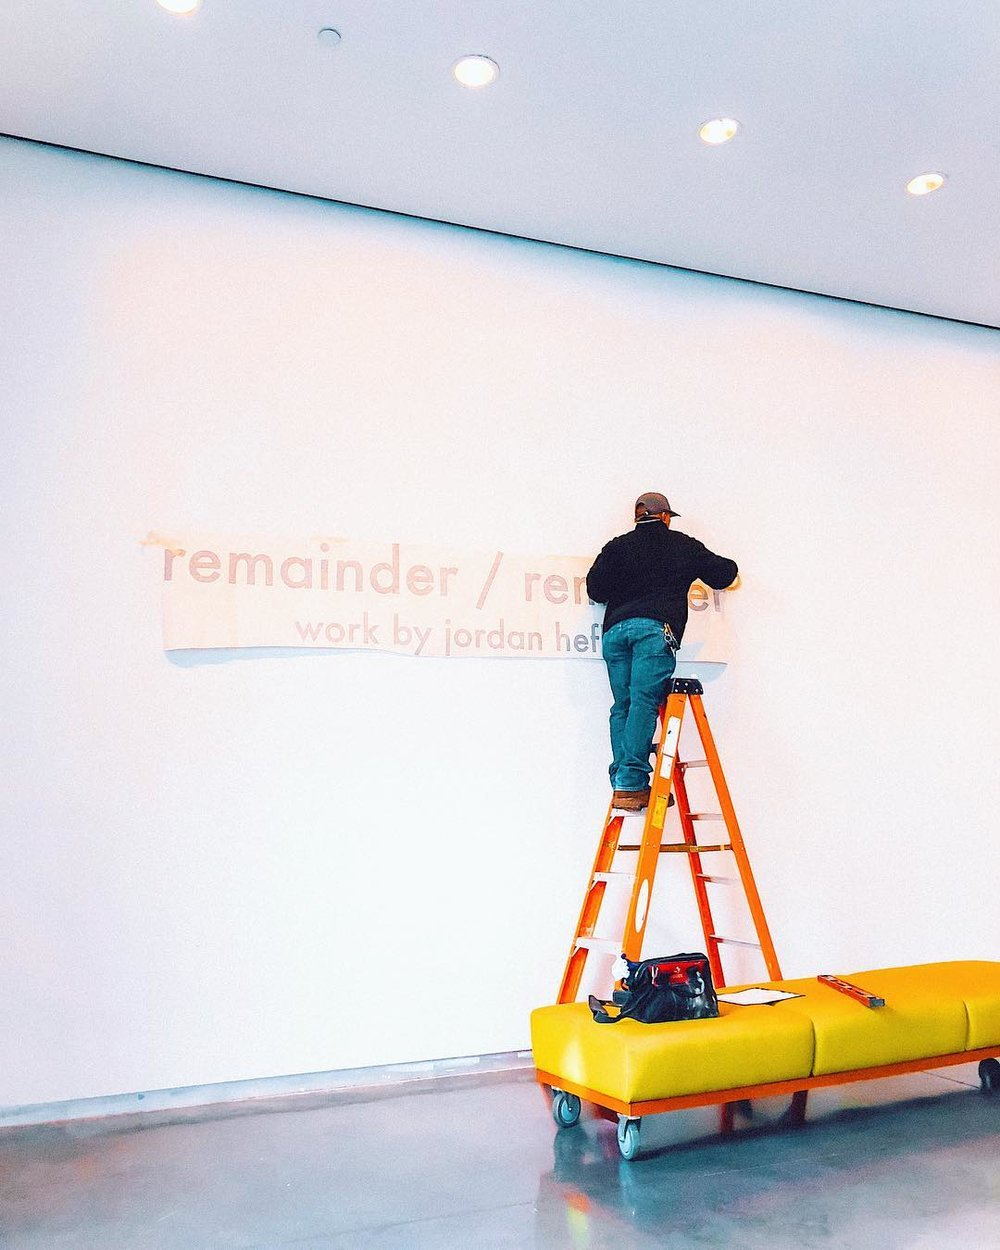 DID YOU KNOW that vinyl lettering like this for a gallery showing costs at least $200?